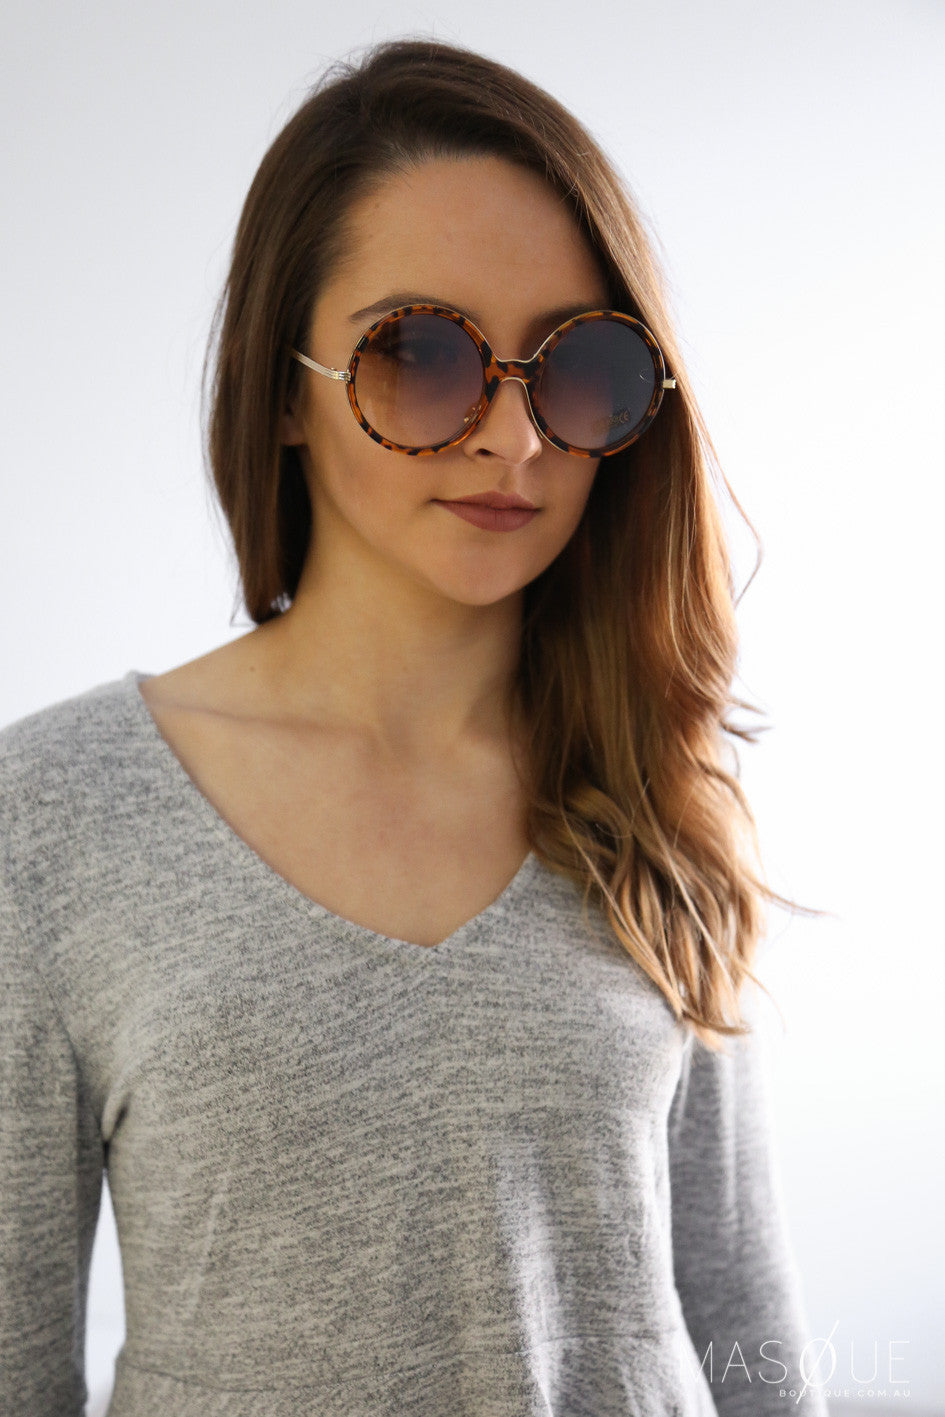 jackie shades in tortoise shell